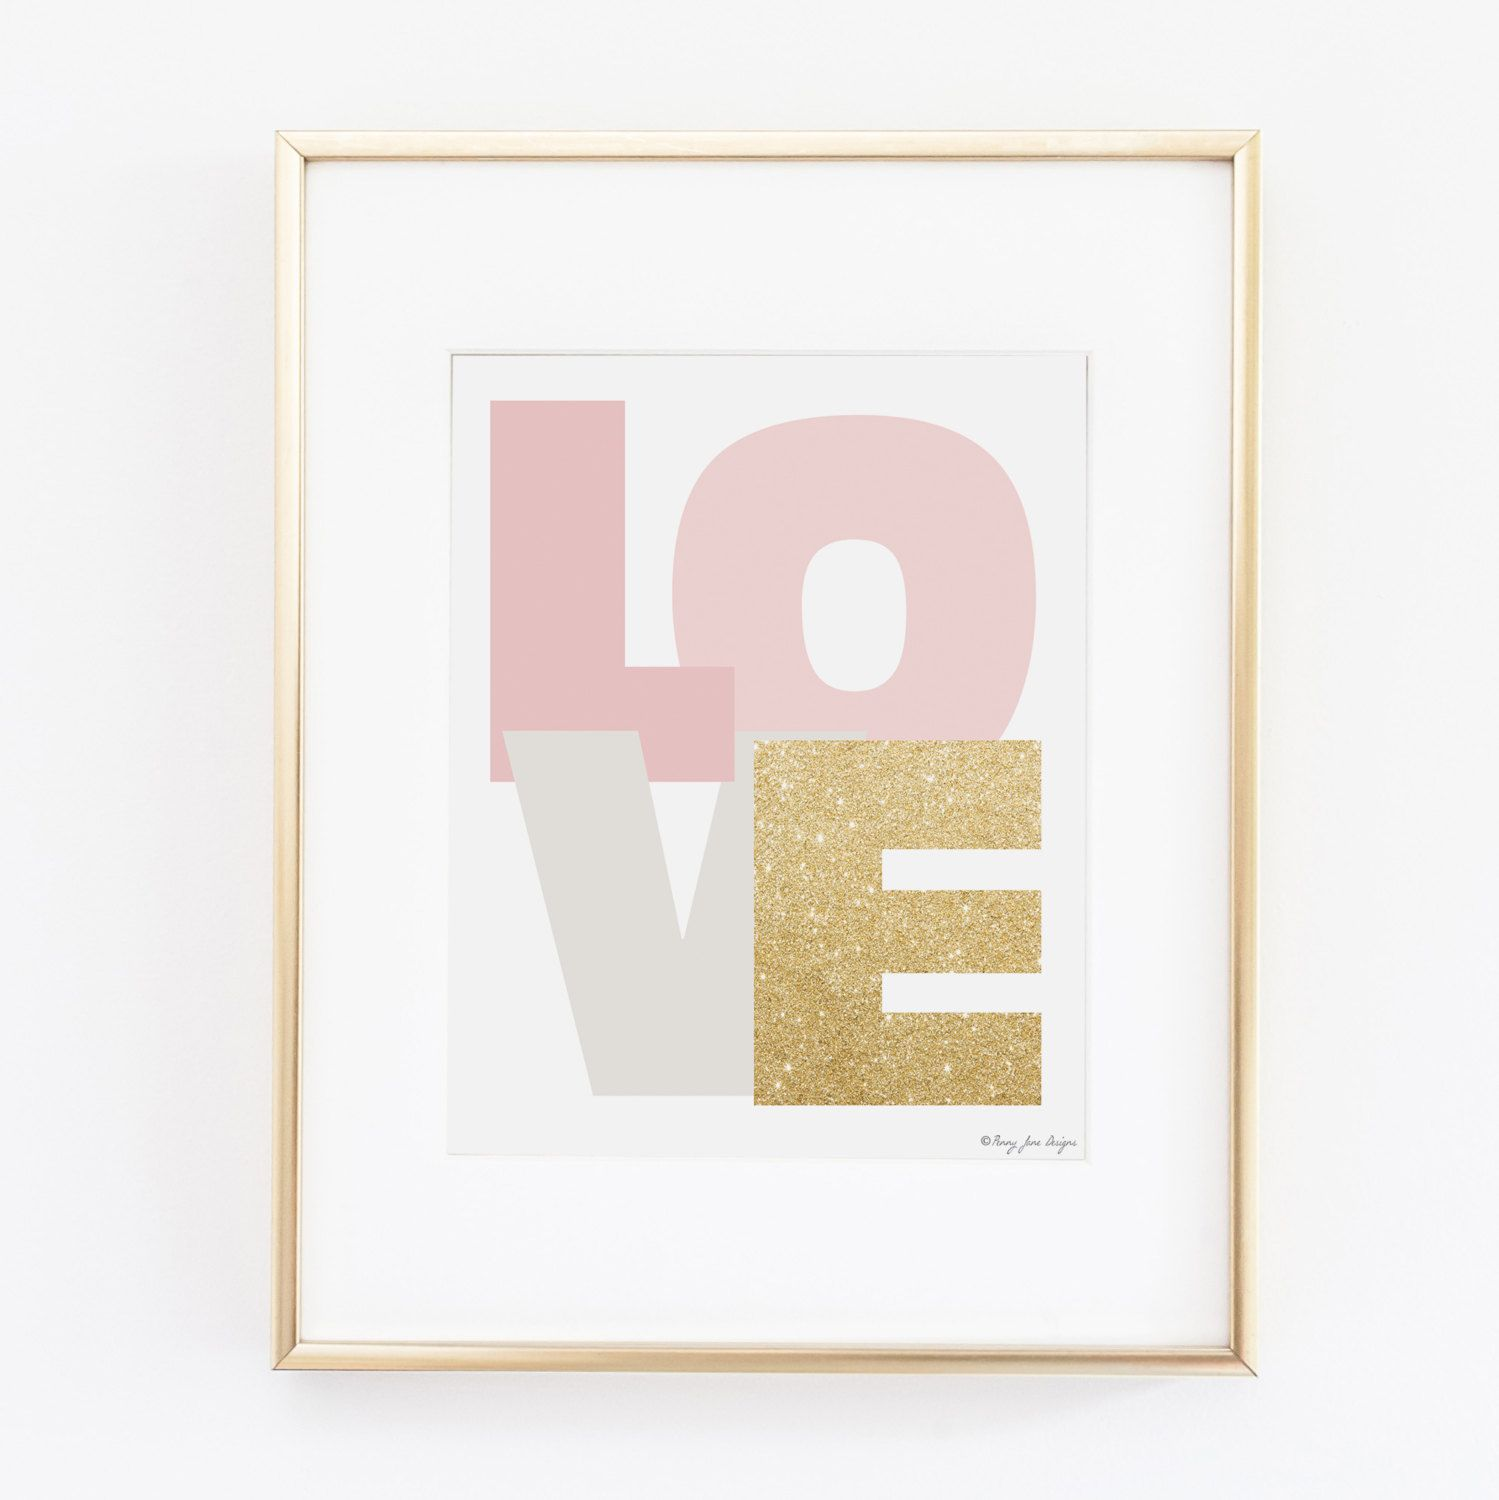 Bold Pink, Gray, and Gold Printable Art | Nursery Decor | Gold Glitter Art | Office Decor Printable Art | Gold Glitter by PennyJaneDesign on Etsy https://www.etsy.com/listing/216248959/bold-pink-gray-and-gold-printable-art